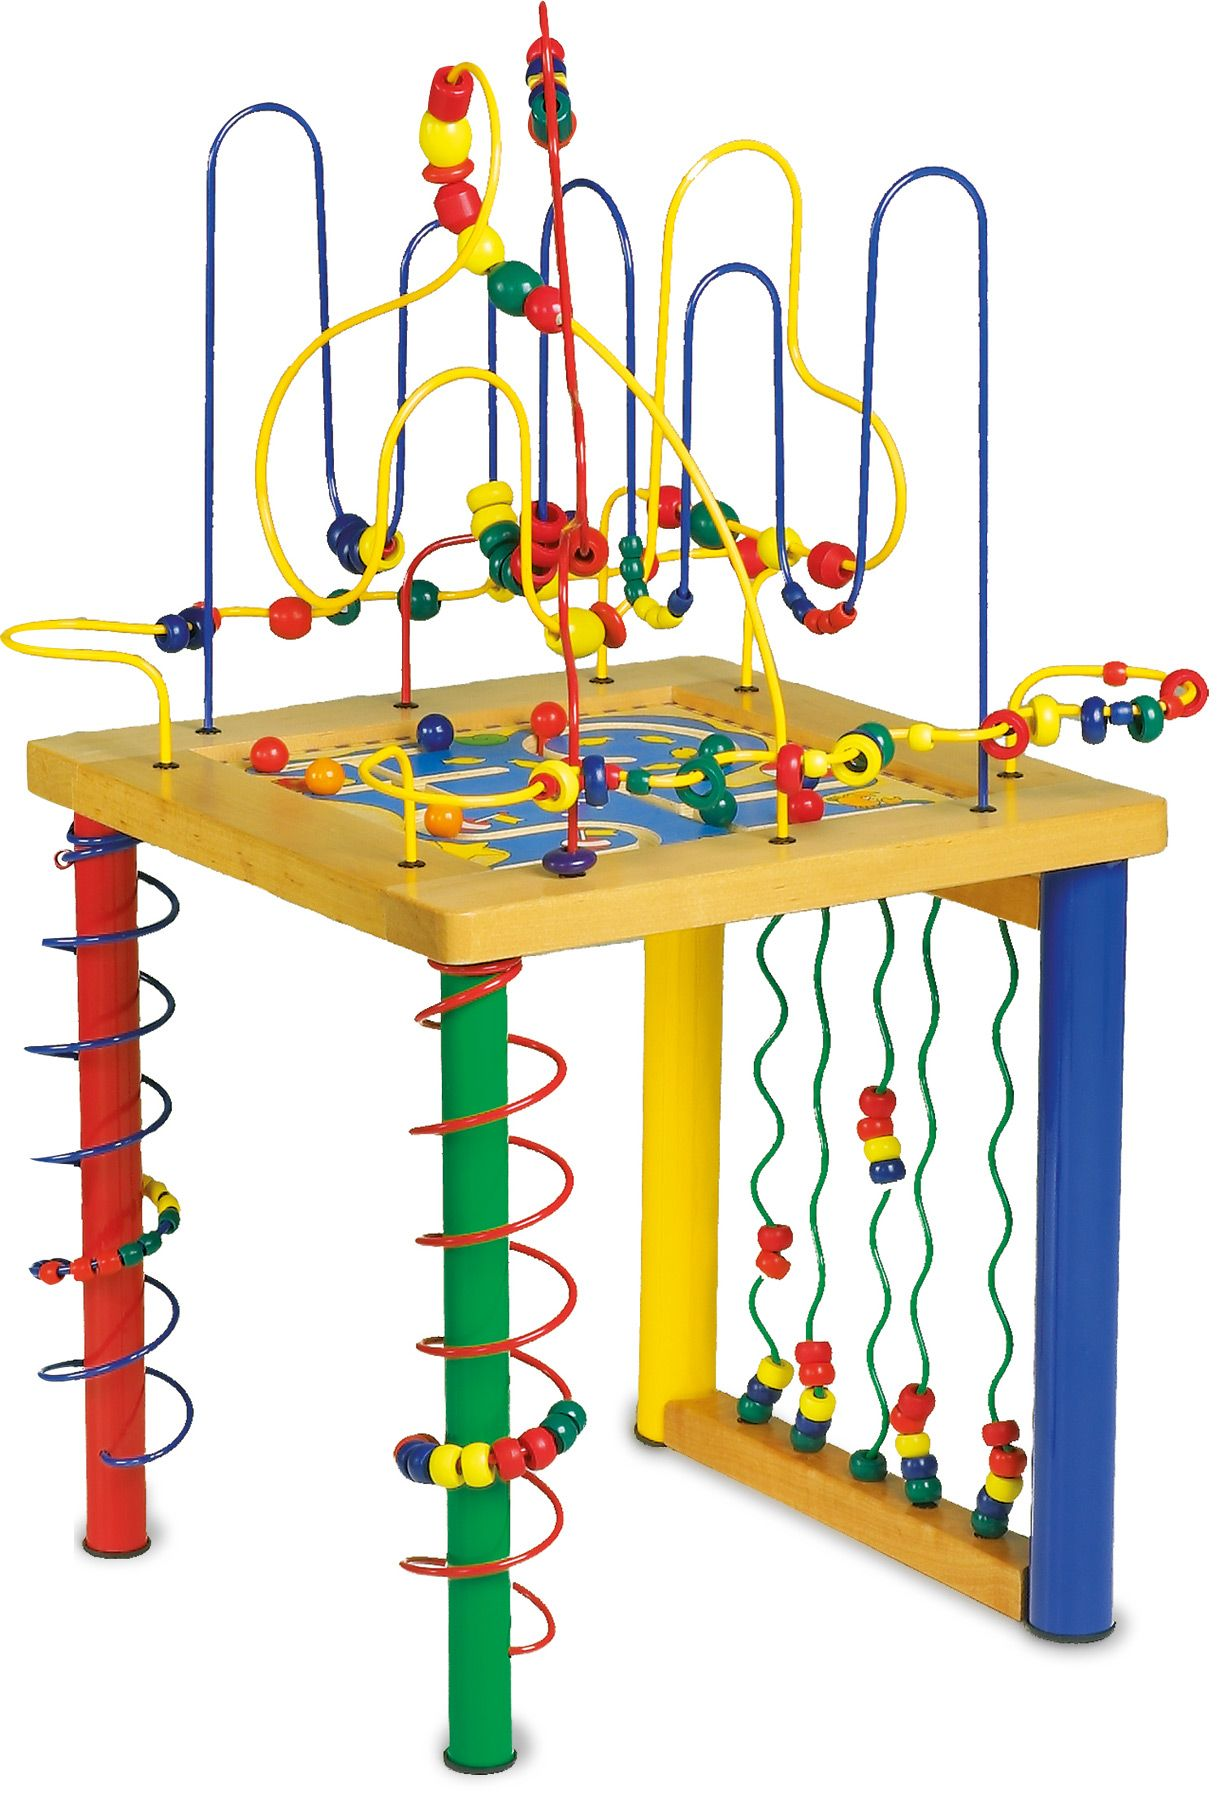 Large Motor Skills Table,Bead activity table,bead frame table,baby ...